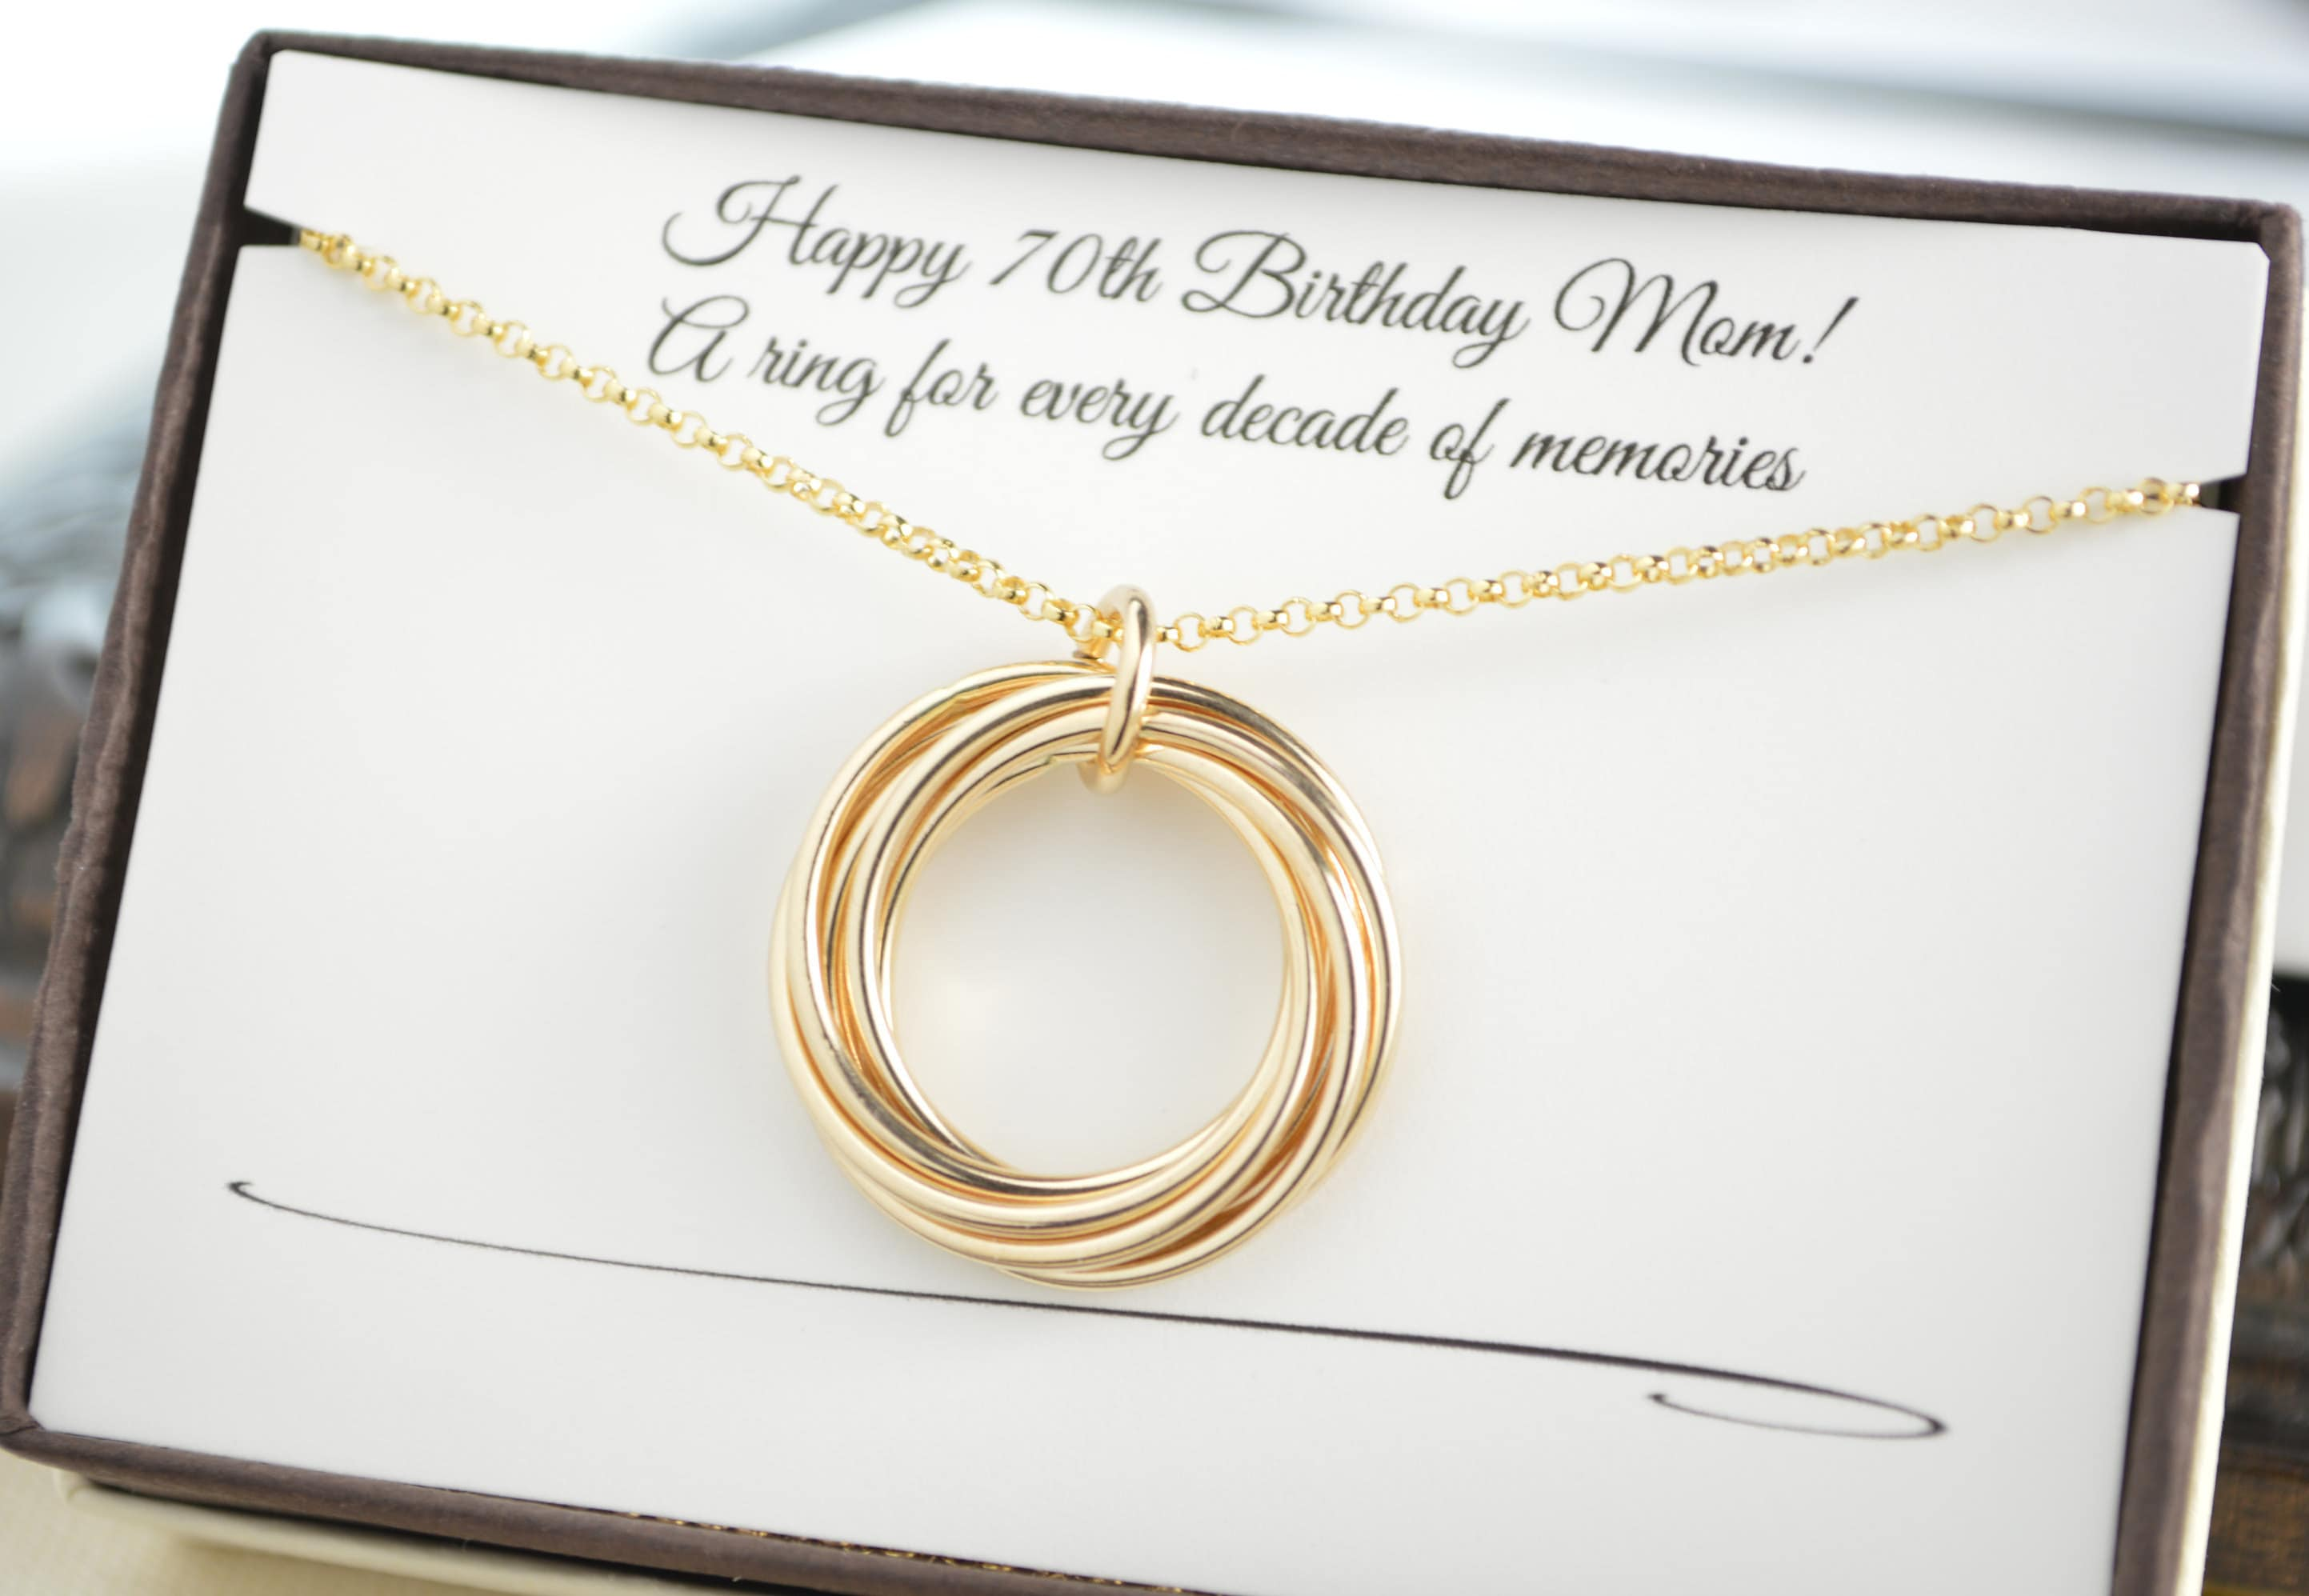 70th Birthday Gift For Mom And Grandma 7 Gold Rings Necklace 7th